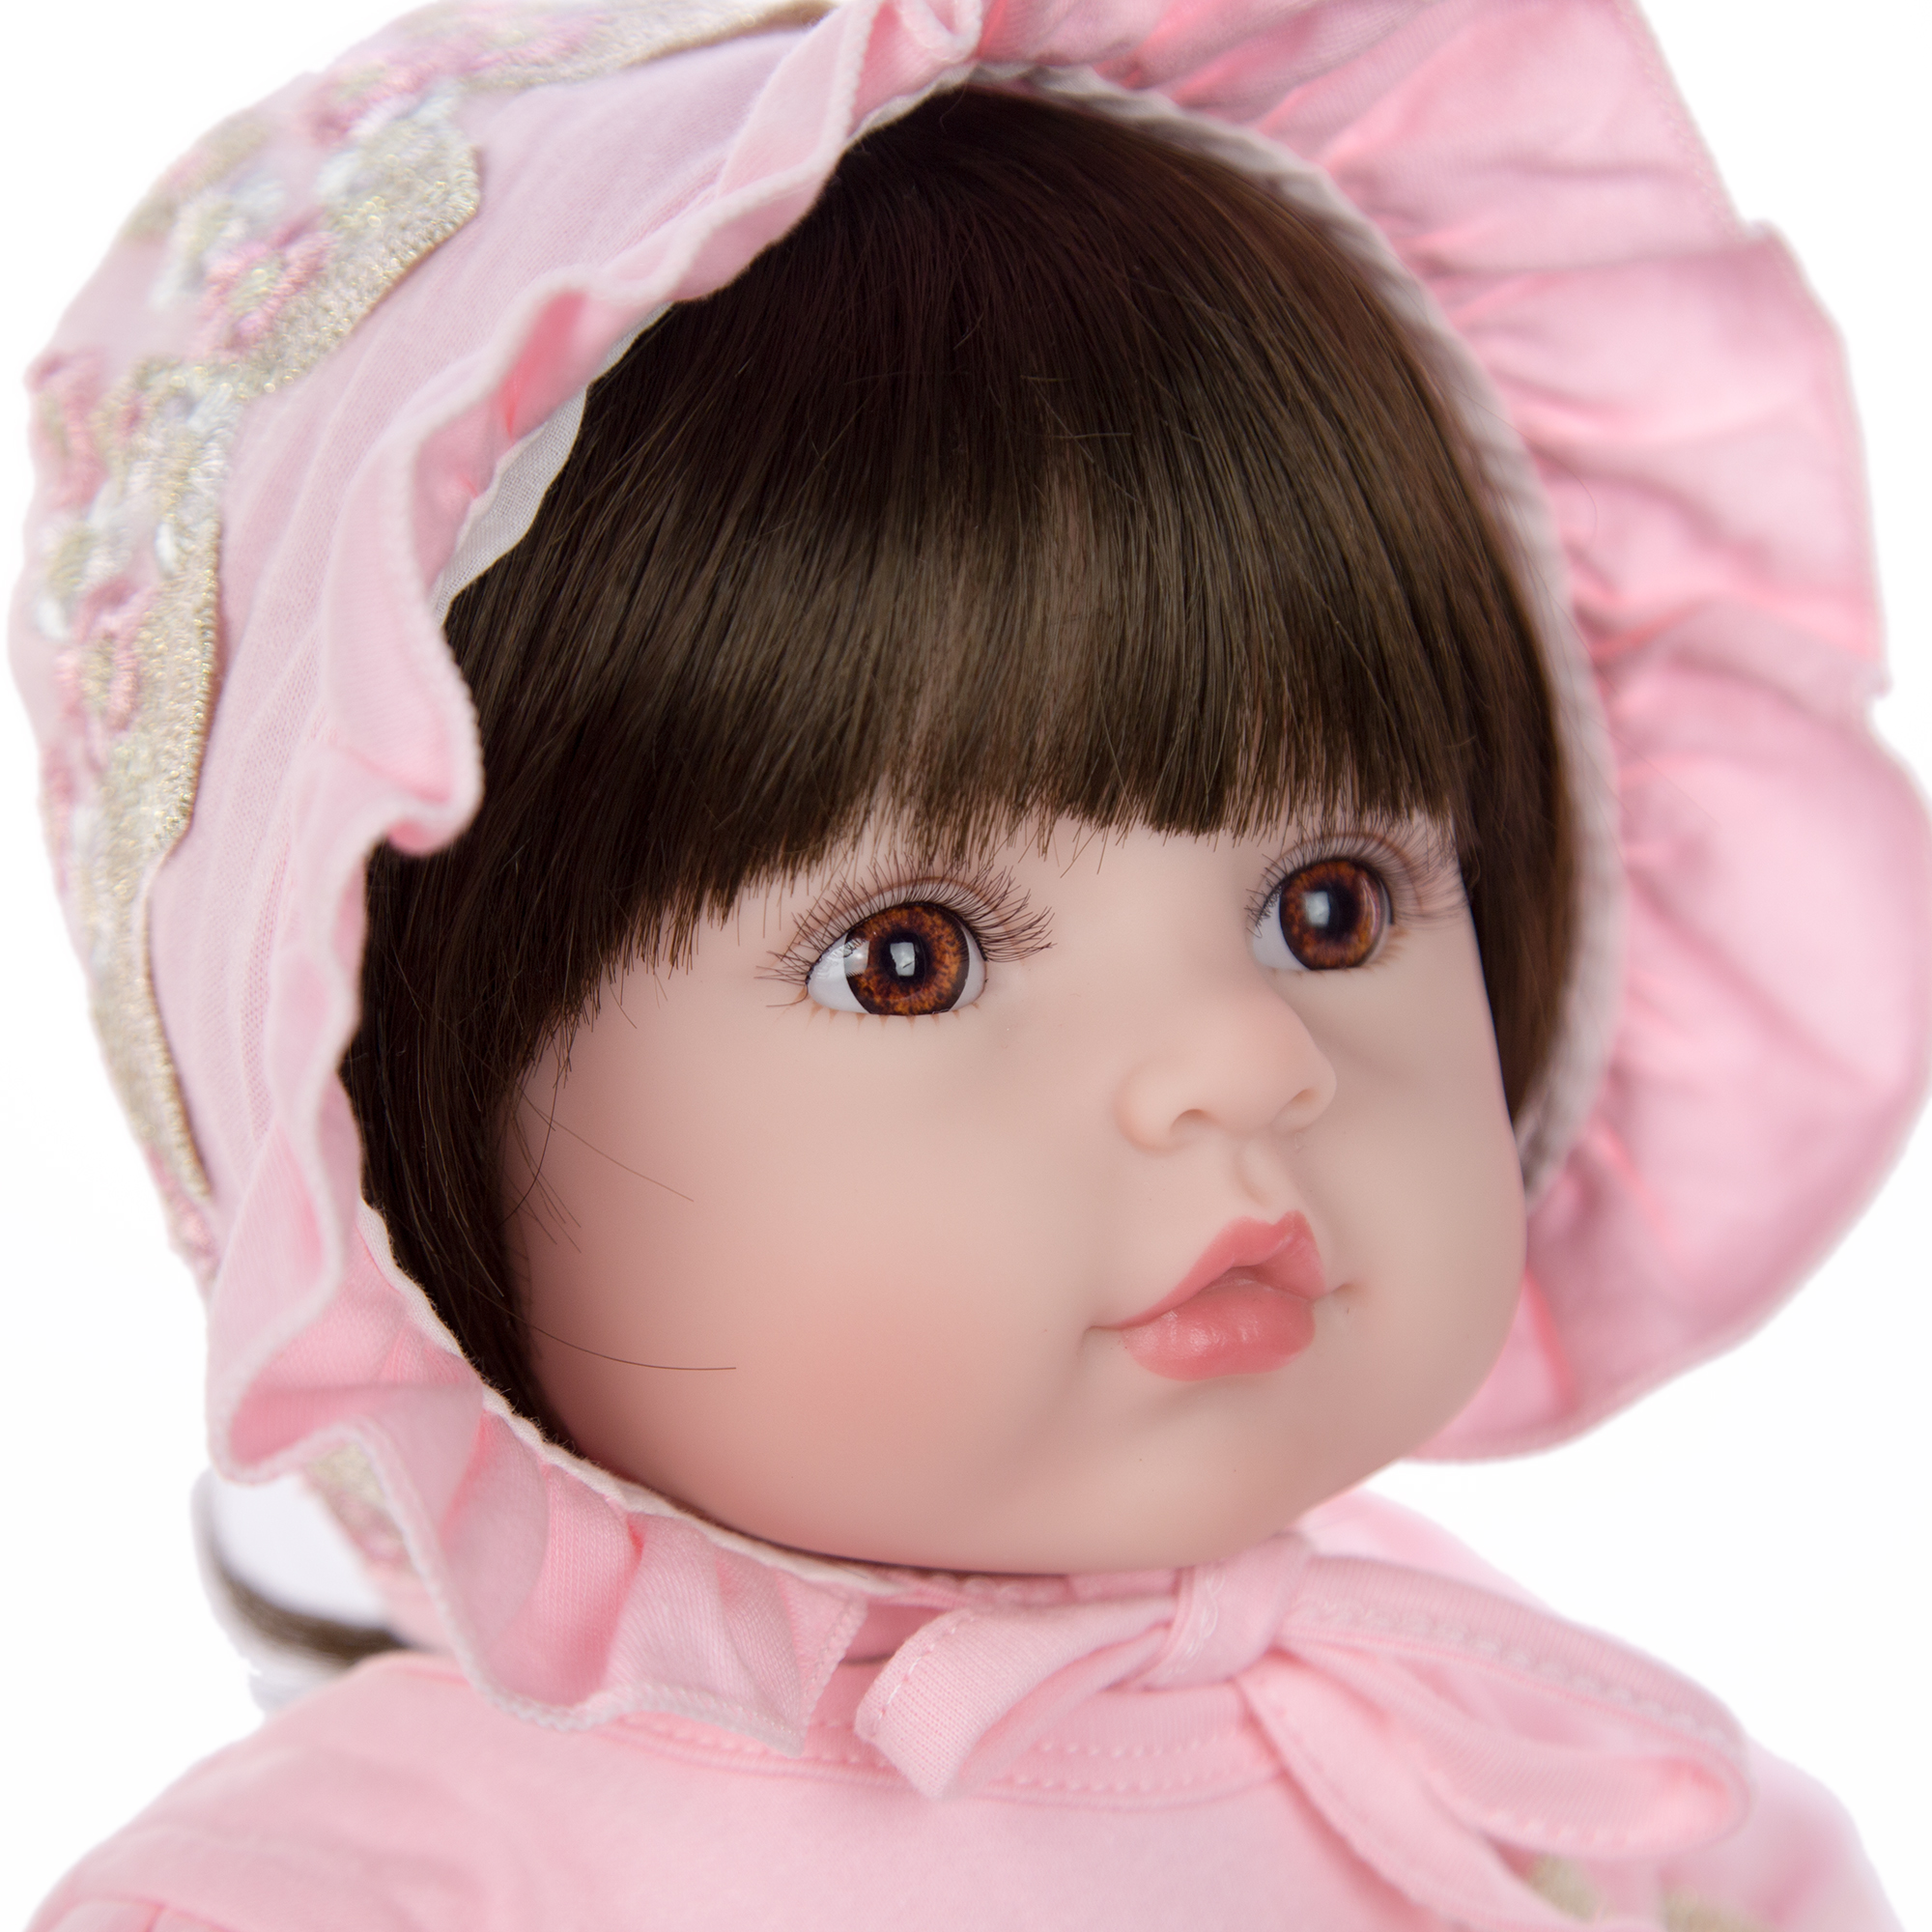 Keiumi Cute Reborn Baby Dolls 60 Cm Silicone Vinyl Stuffed Doll Cosaply Princess Baby Reborn Lifelike Educational Birthday Gifts Aliexpress Com Imall Com